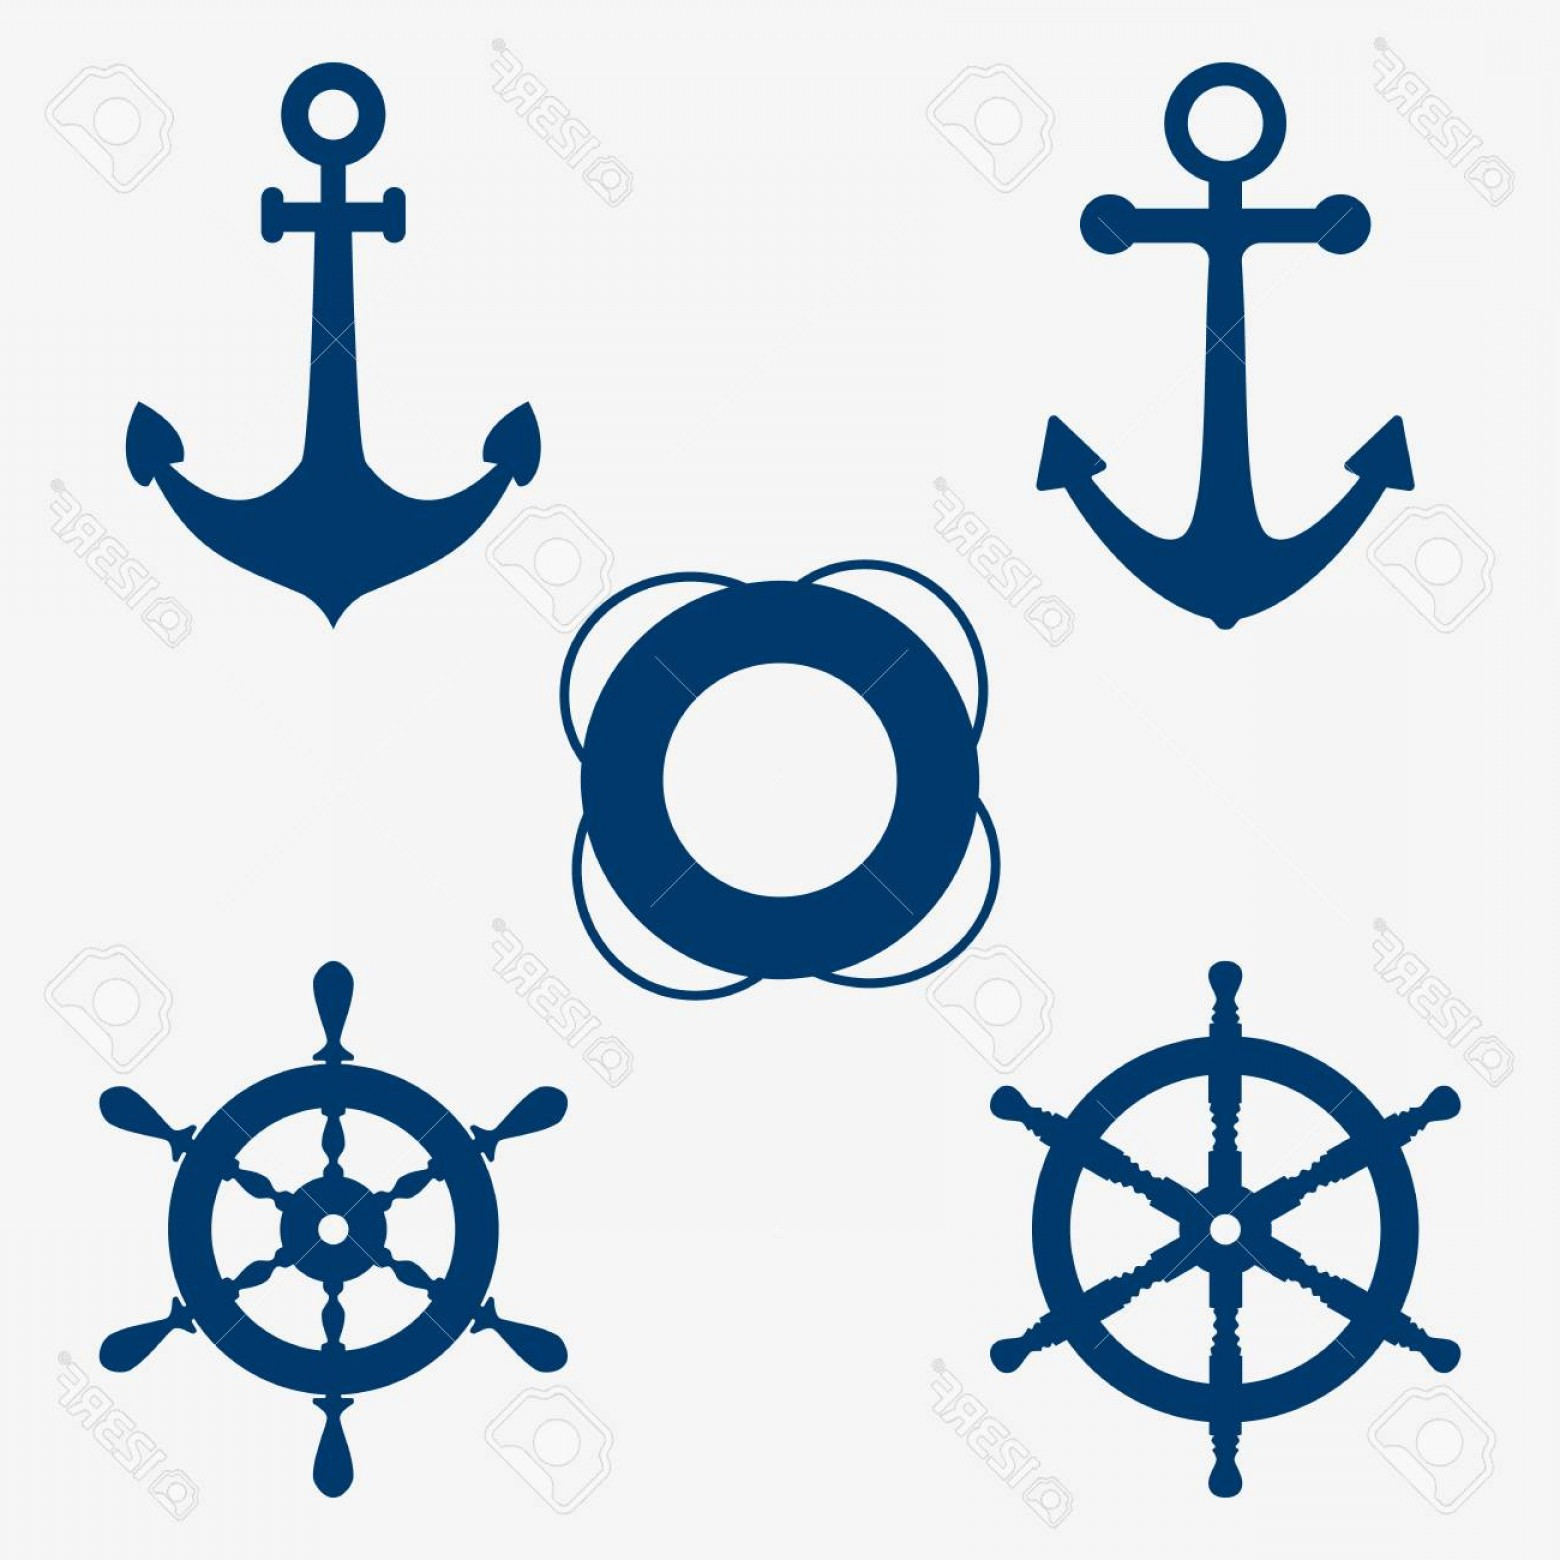 1560x1560 Photostock Vector Set Of Images Of An Anchor Lifebuoy And Steering